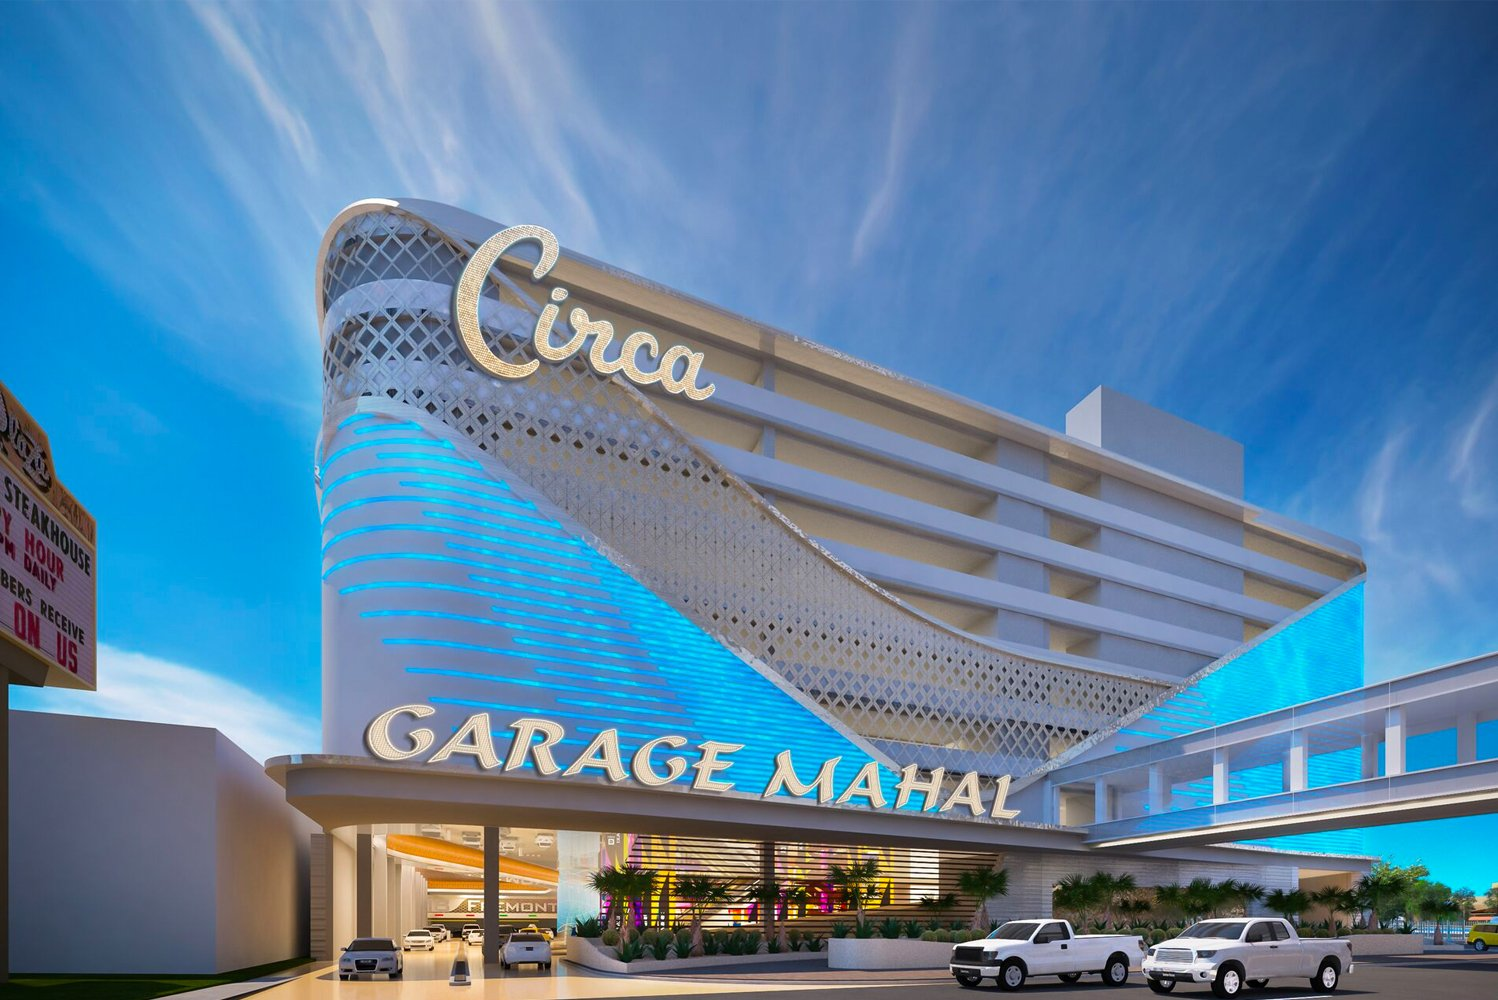 Circa Resort & Casino reached the halfway mark in its 22-month construction process.